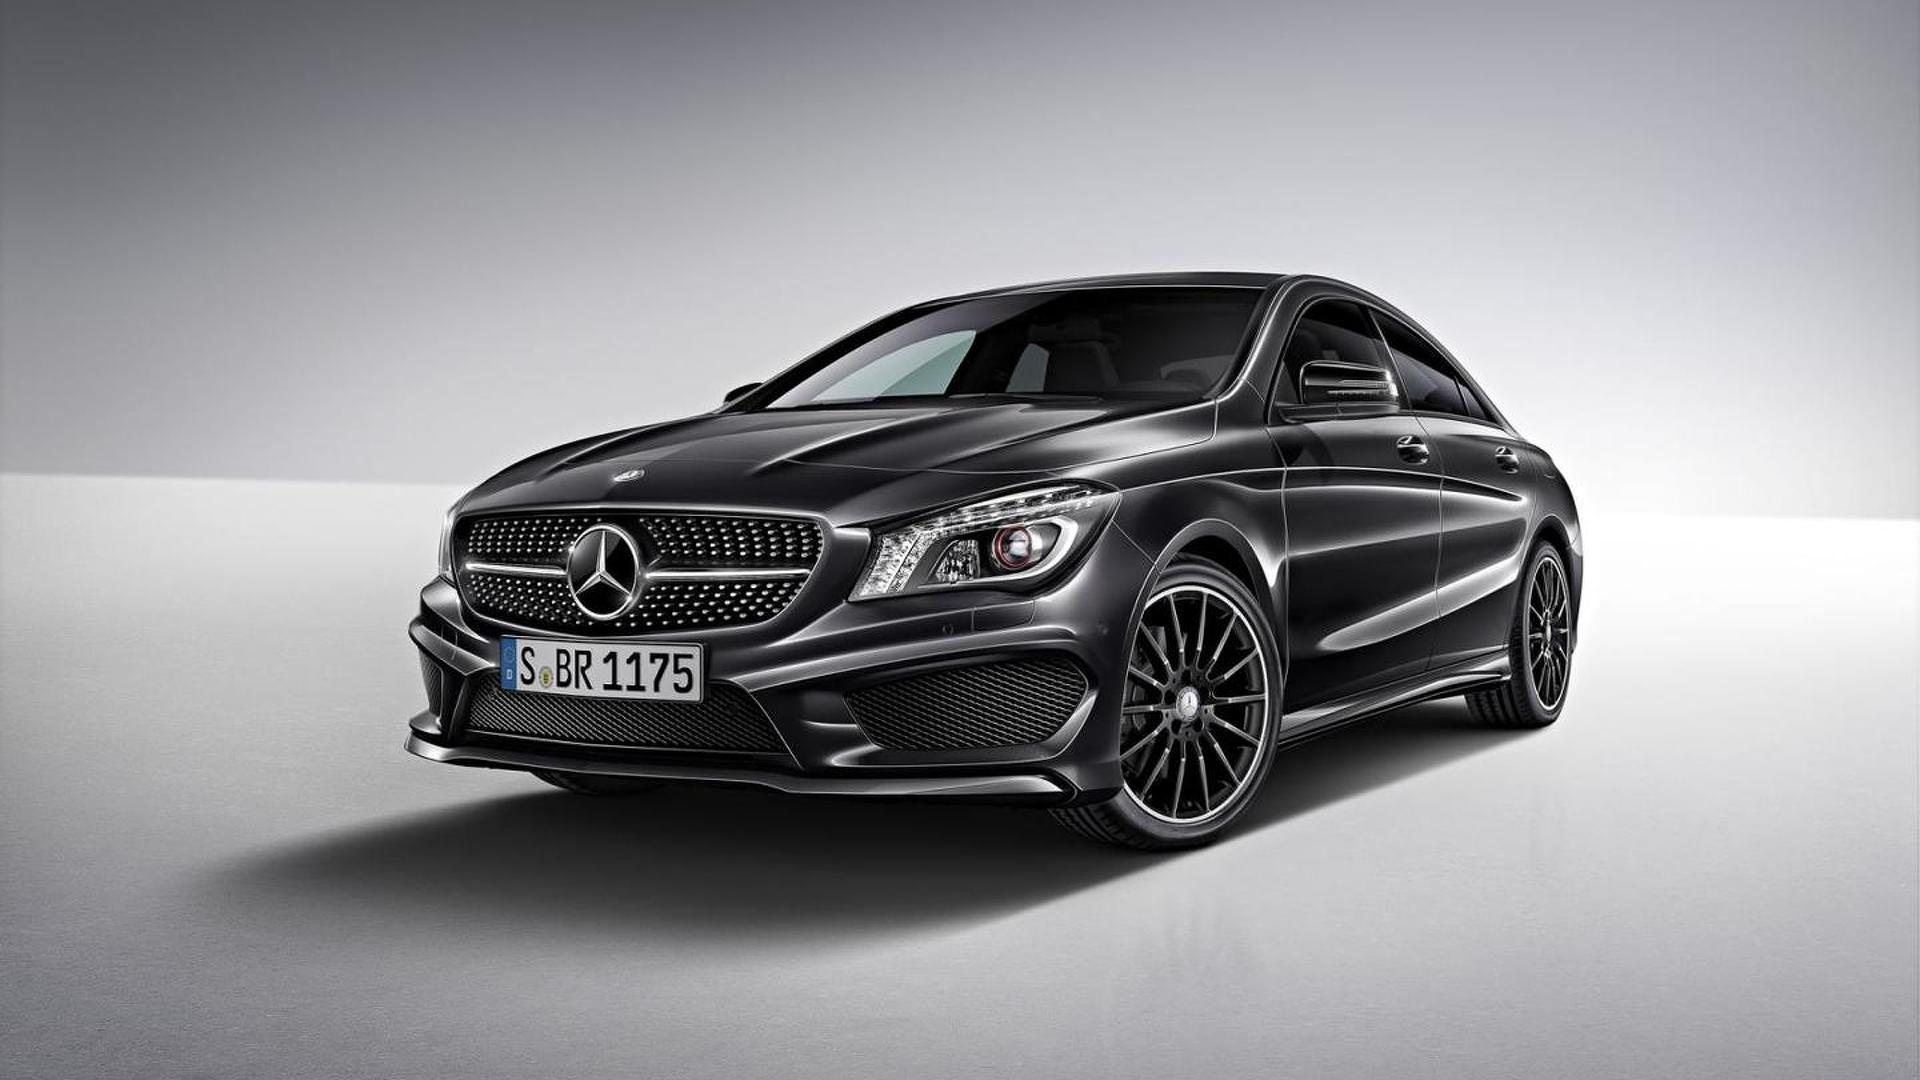 Mercedes-Benz won U.S. luxury sales battle against BMW in 2013